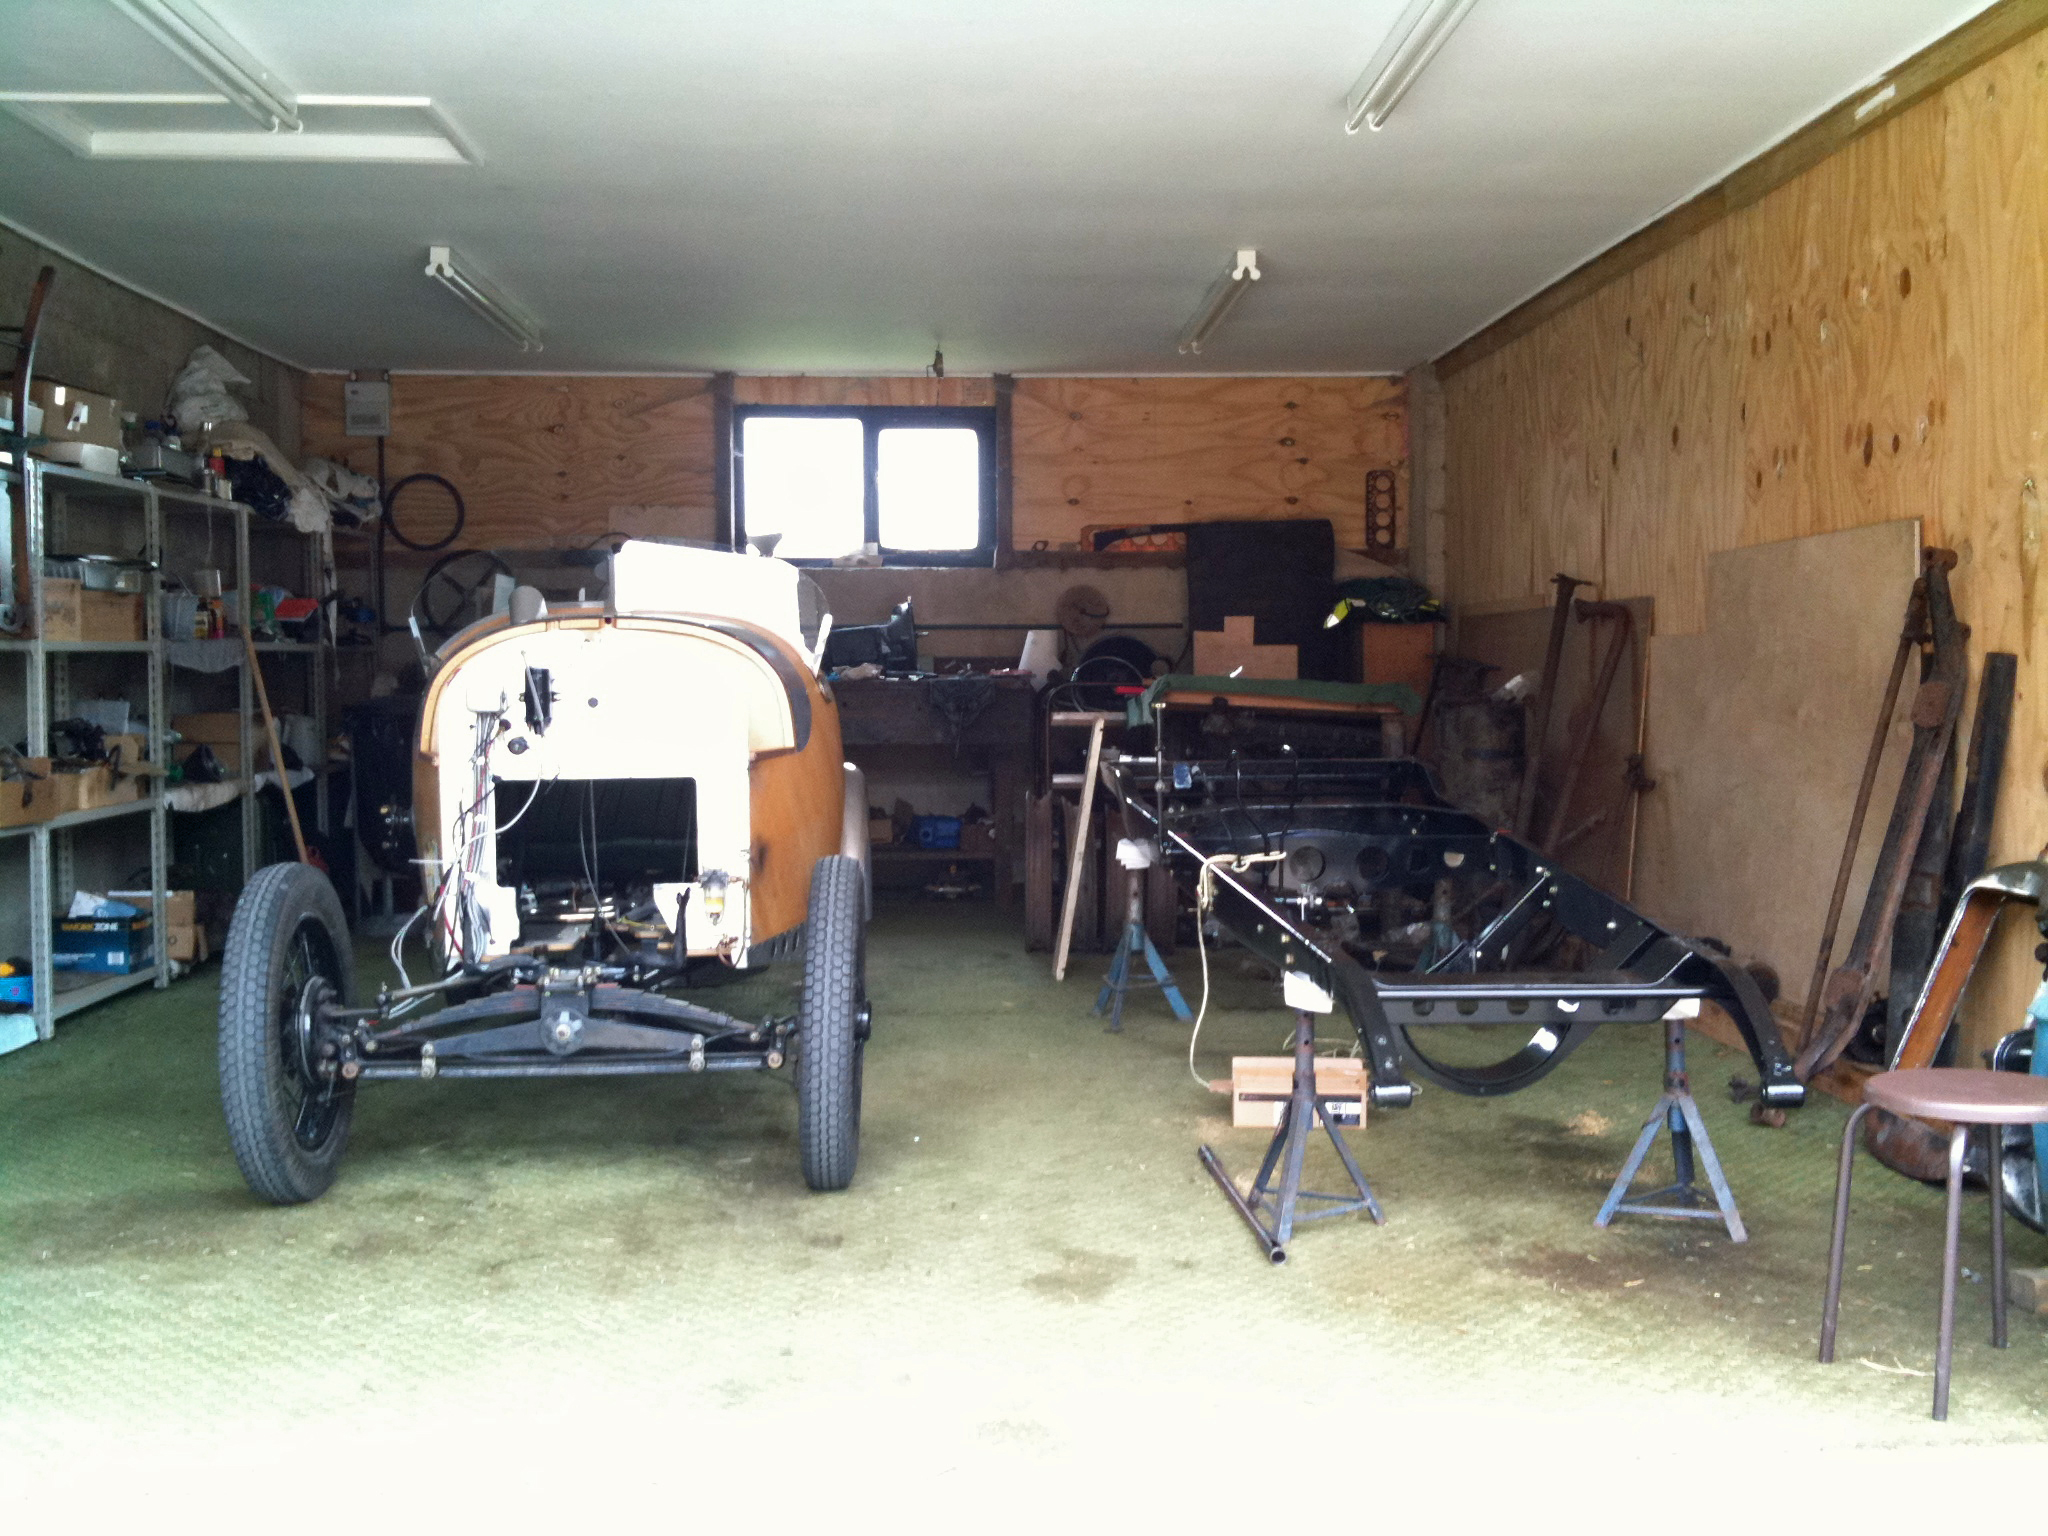 Uncategorized well pump house covers austin locking sump lid - Back Home I Opened The Workshop Door And Surveyed The Amount Of Work Still To Do I Ve Yet To Get The Parts Back To Reassemble The Austin That Ll Be A